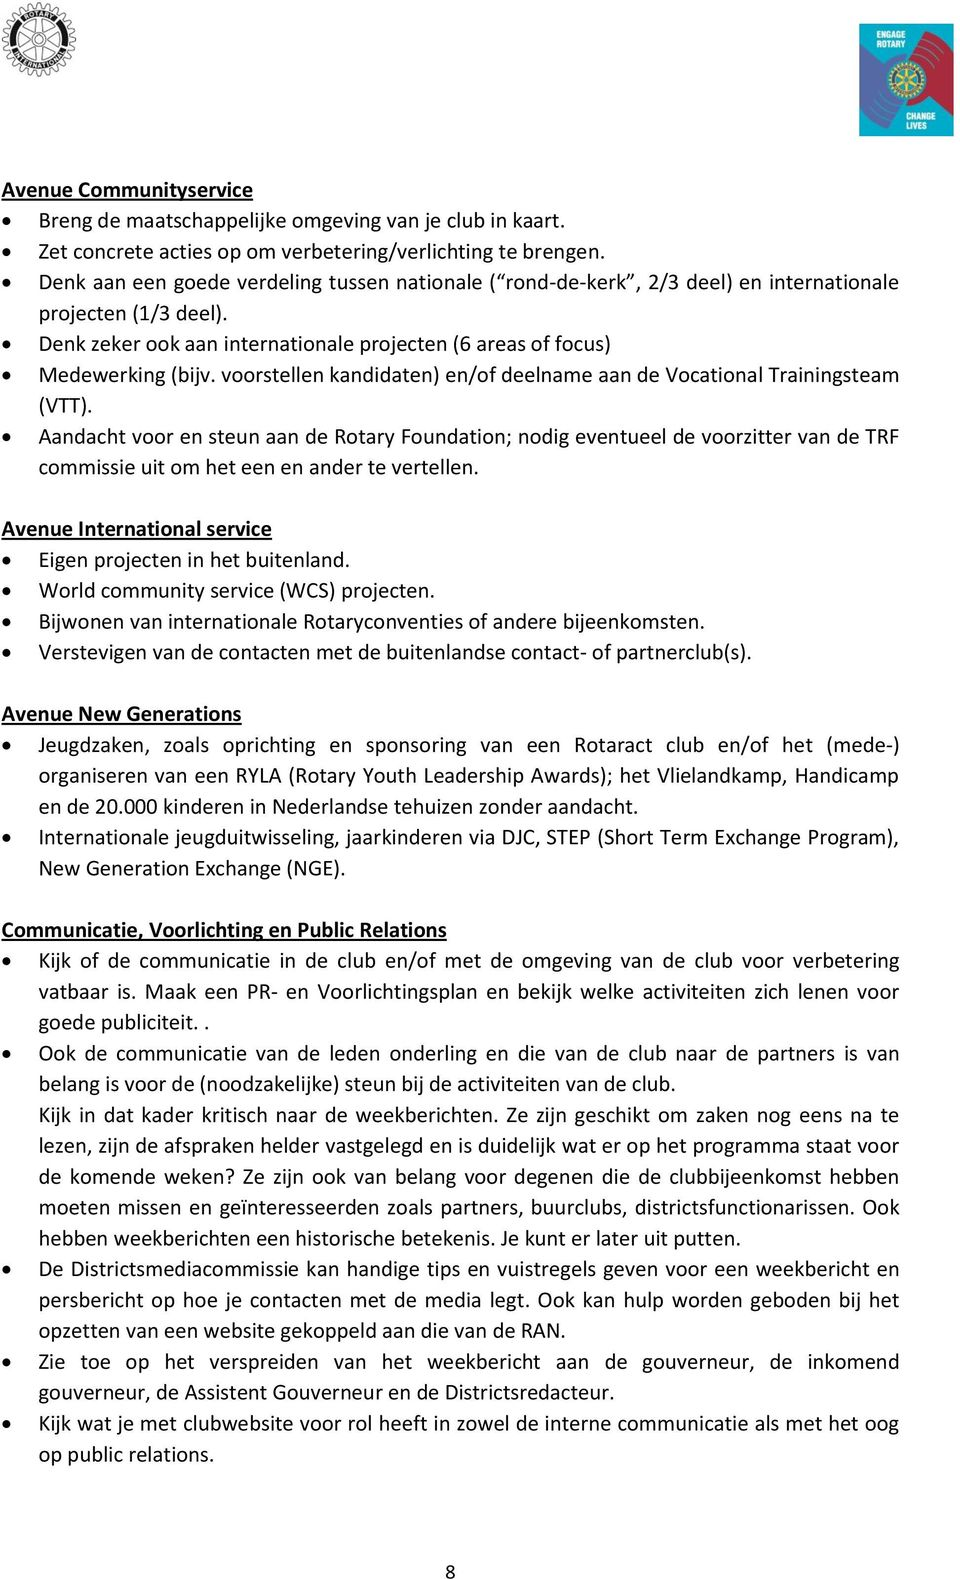 voorstellen kandidaten) en/of deelname aan de Vocational Trainingsteam (VTT).